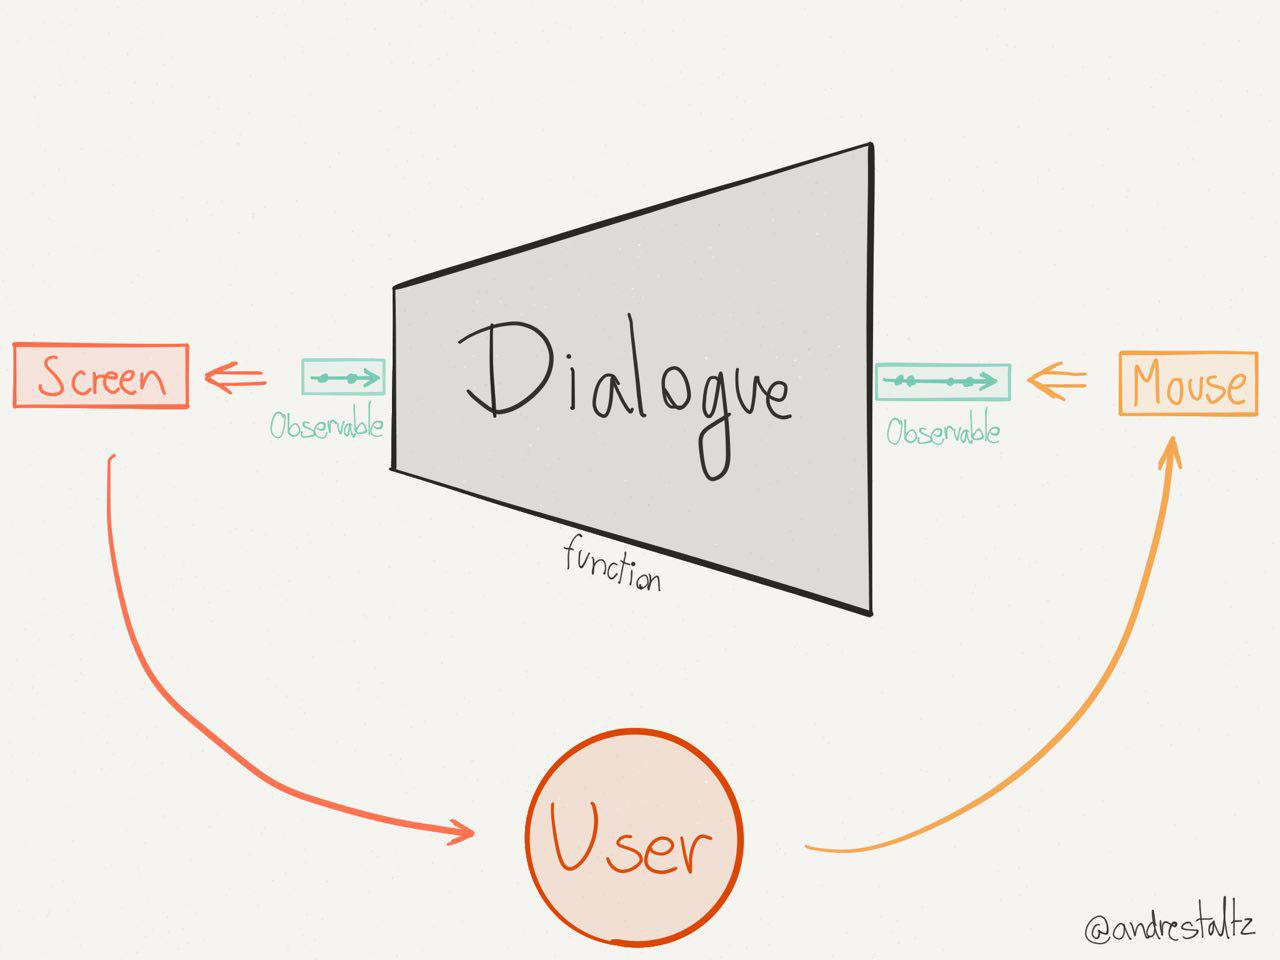 image-nested-dialogues-2